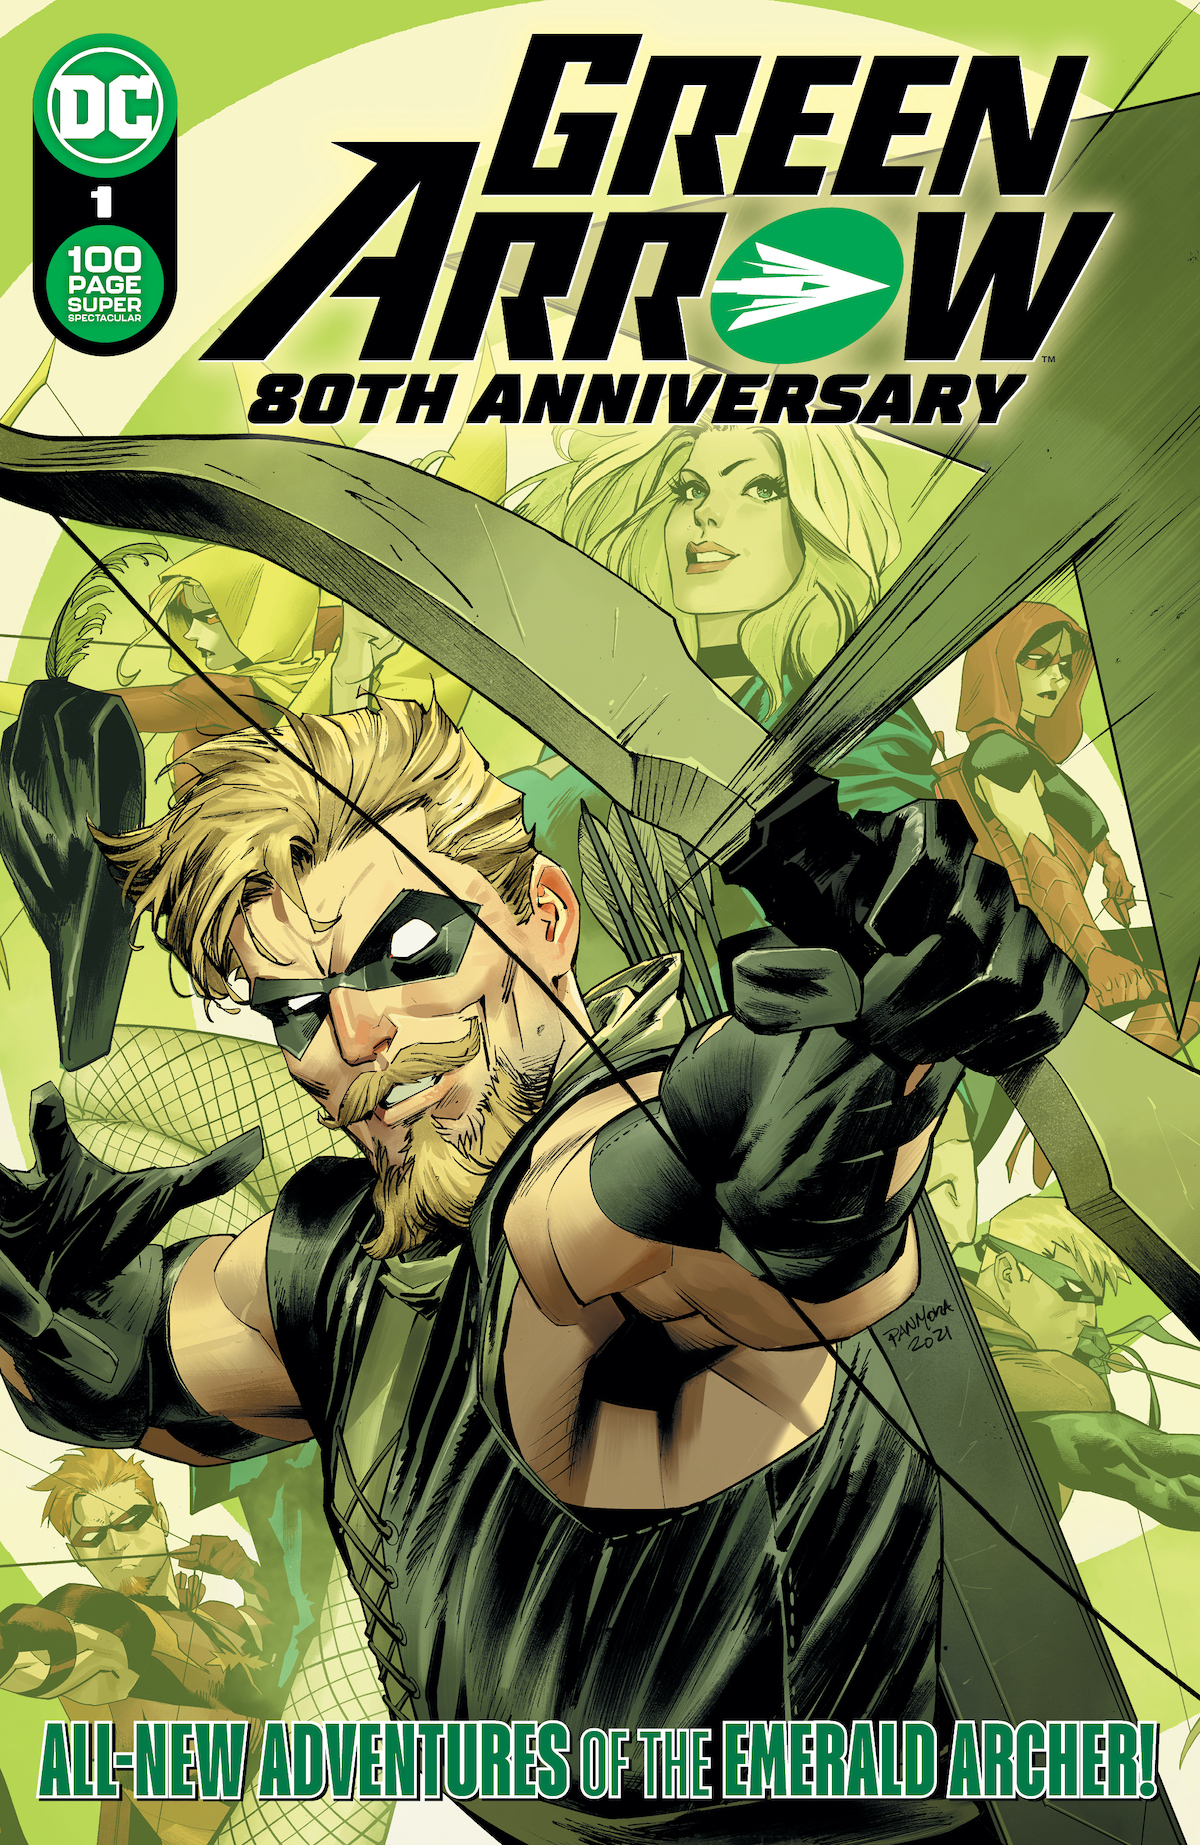 GREEN ARROW 80th Anniversary special coming in June